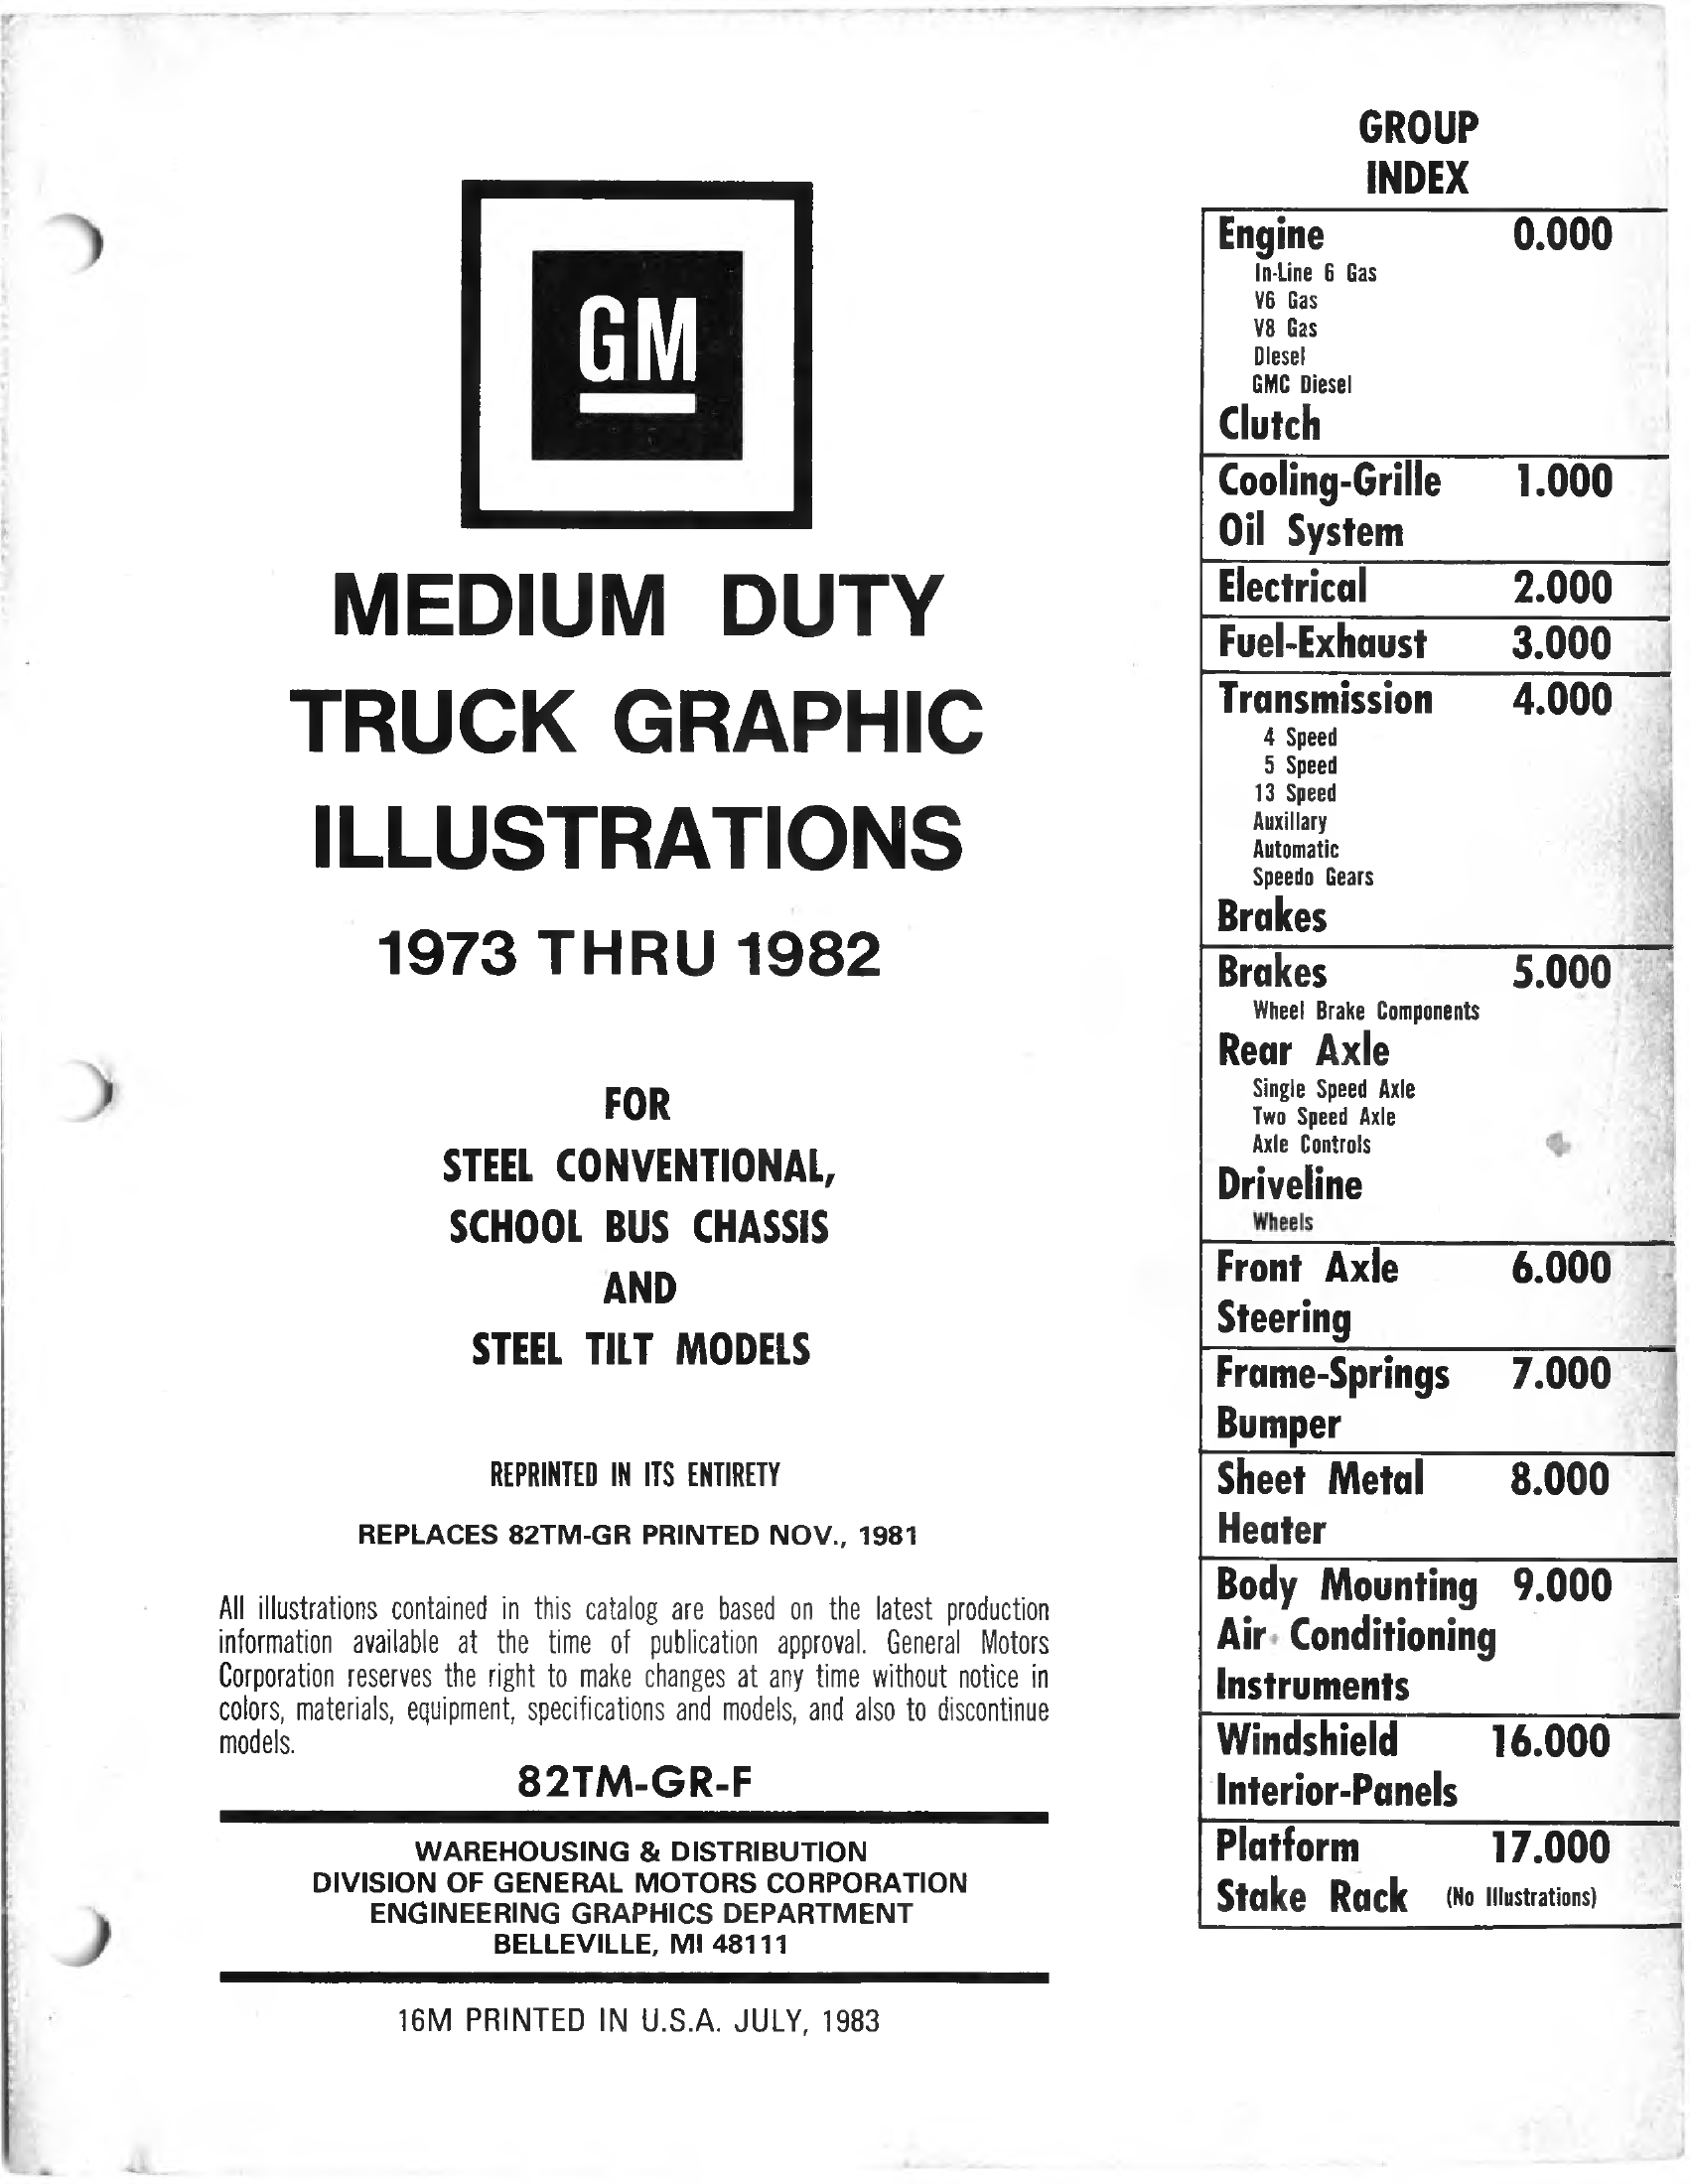 Parts and Accessories Catalog 82TMGRF July 1983